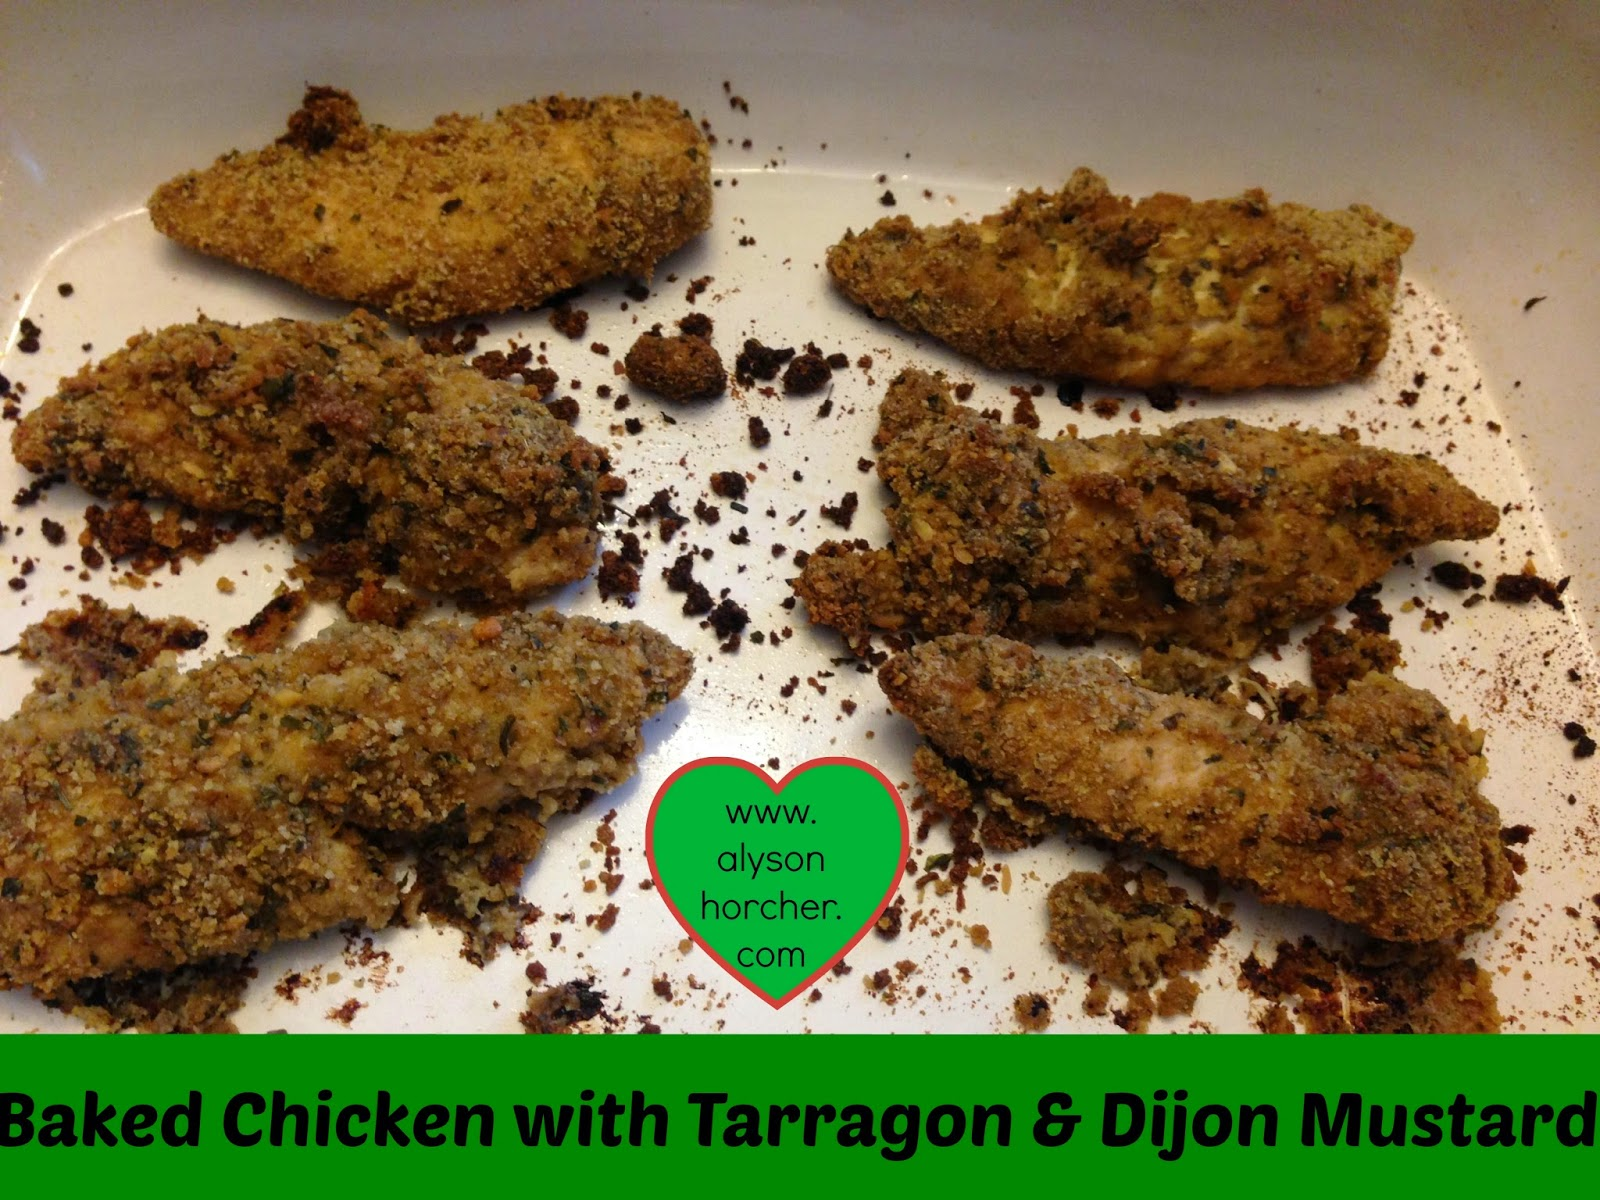 www.alysonhorcher.com, Baked Chicken with Tarragon and Dijon Mustard, Healthy recipes, clean eating, clean recipes, clean chicken dinners, kid friendly dinners, kid friendly meals, tasty tuesday, 21 day fix, 21 day fix extreme, 21 day fix nutrition plan, healthy and fit